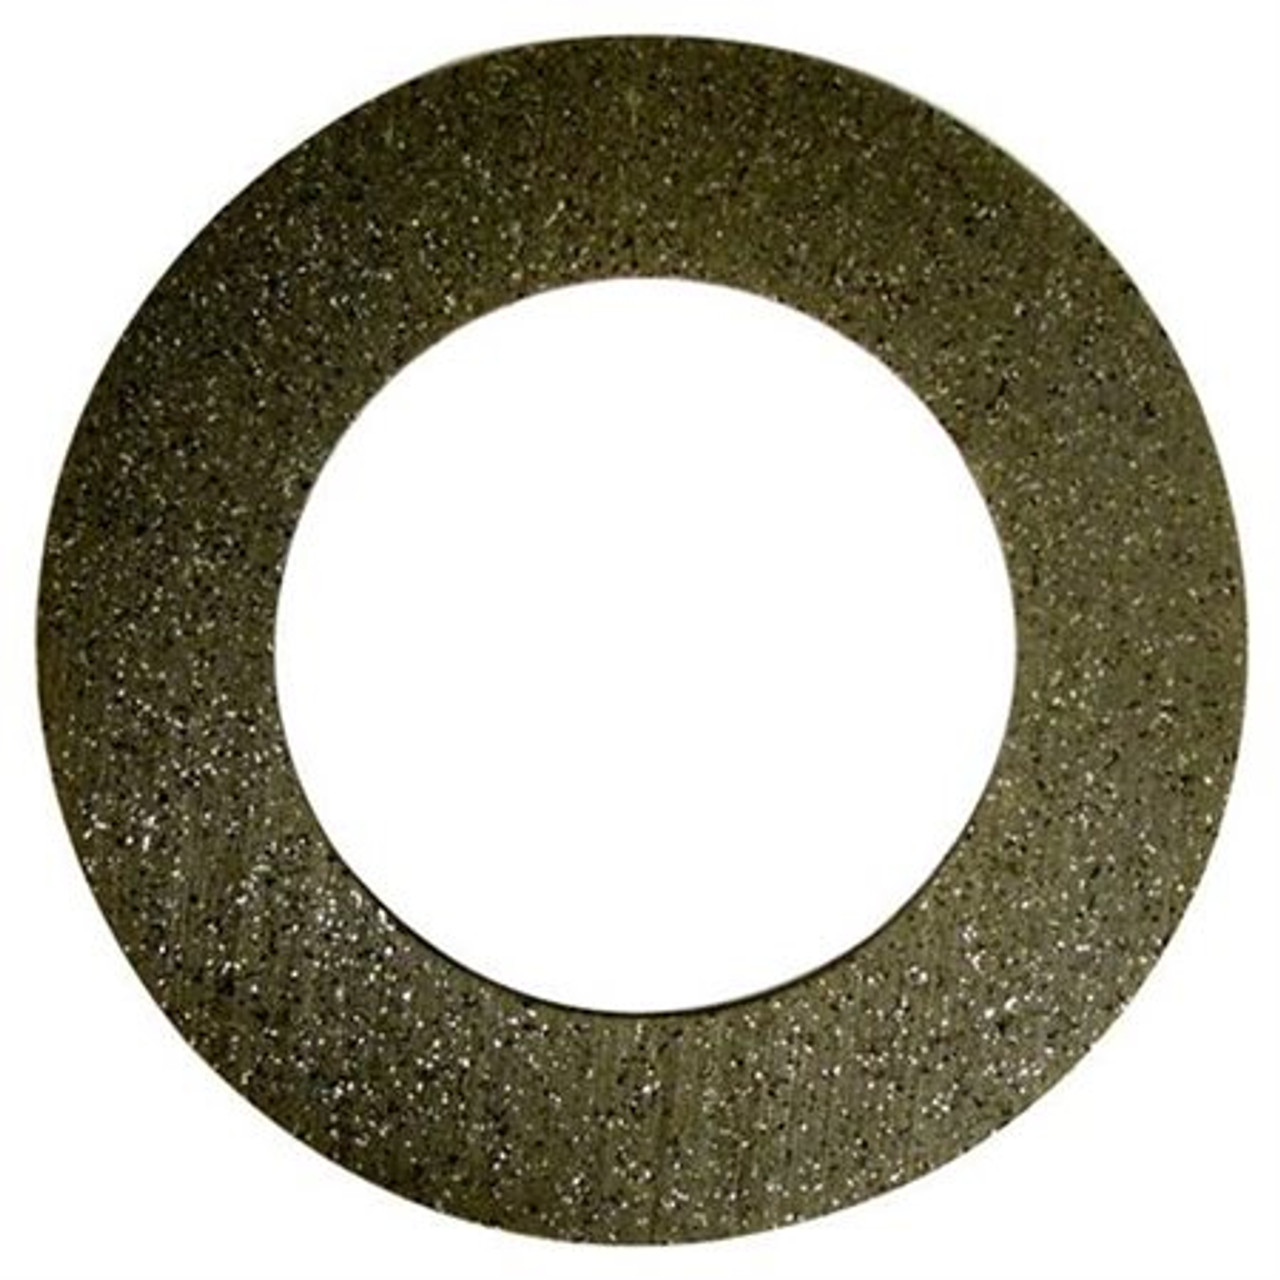 Woods or Bush Hog Slip Clutch Discs 7280